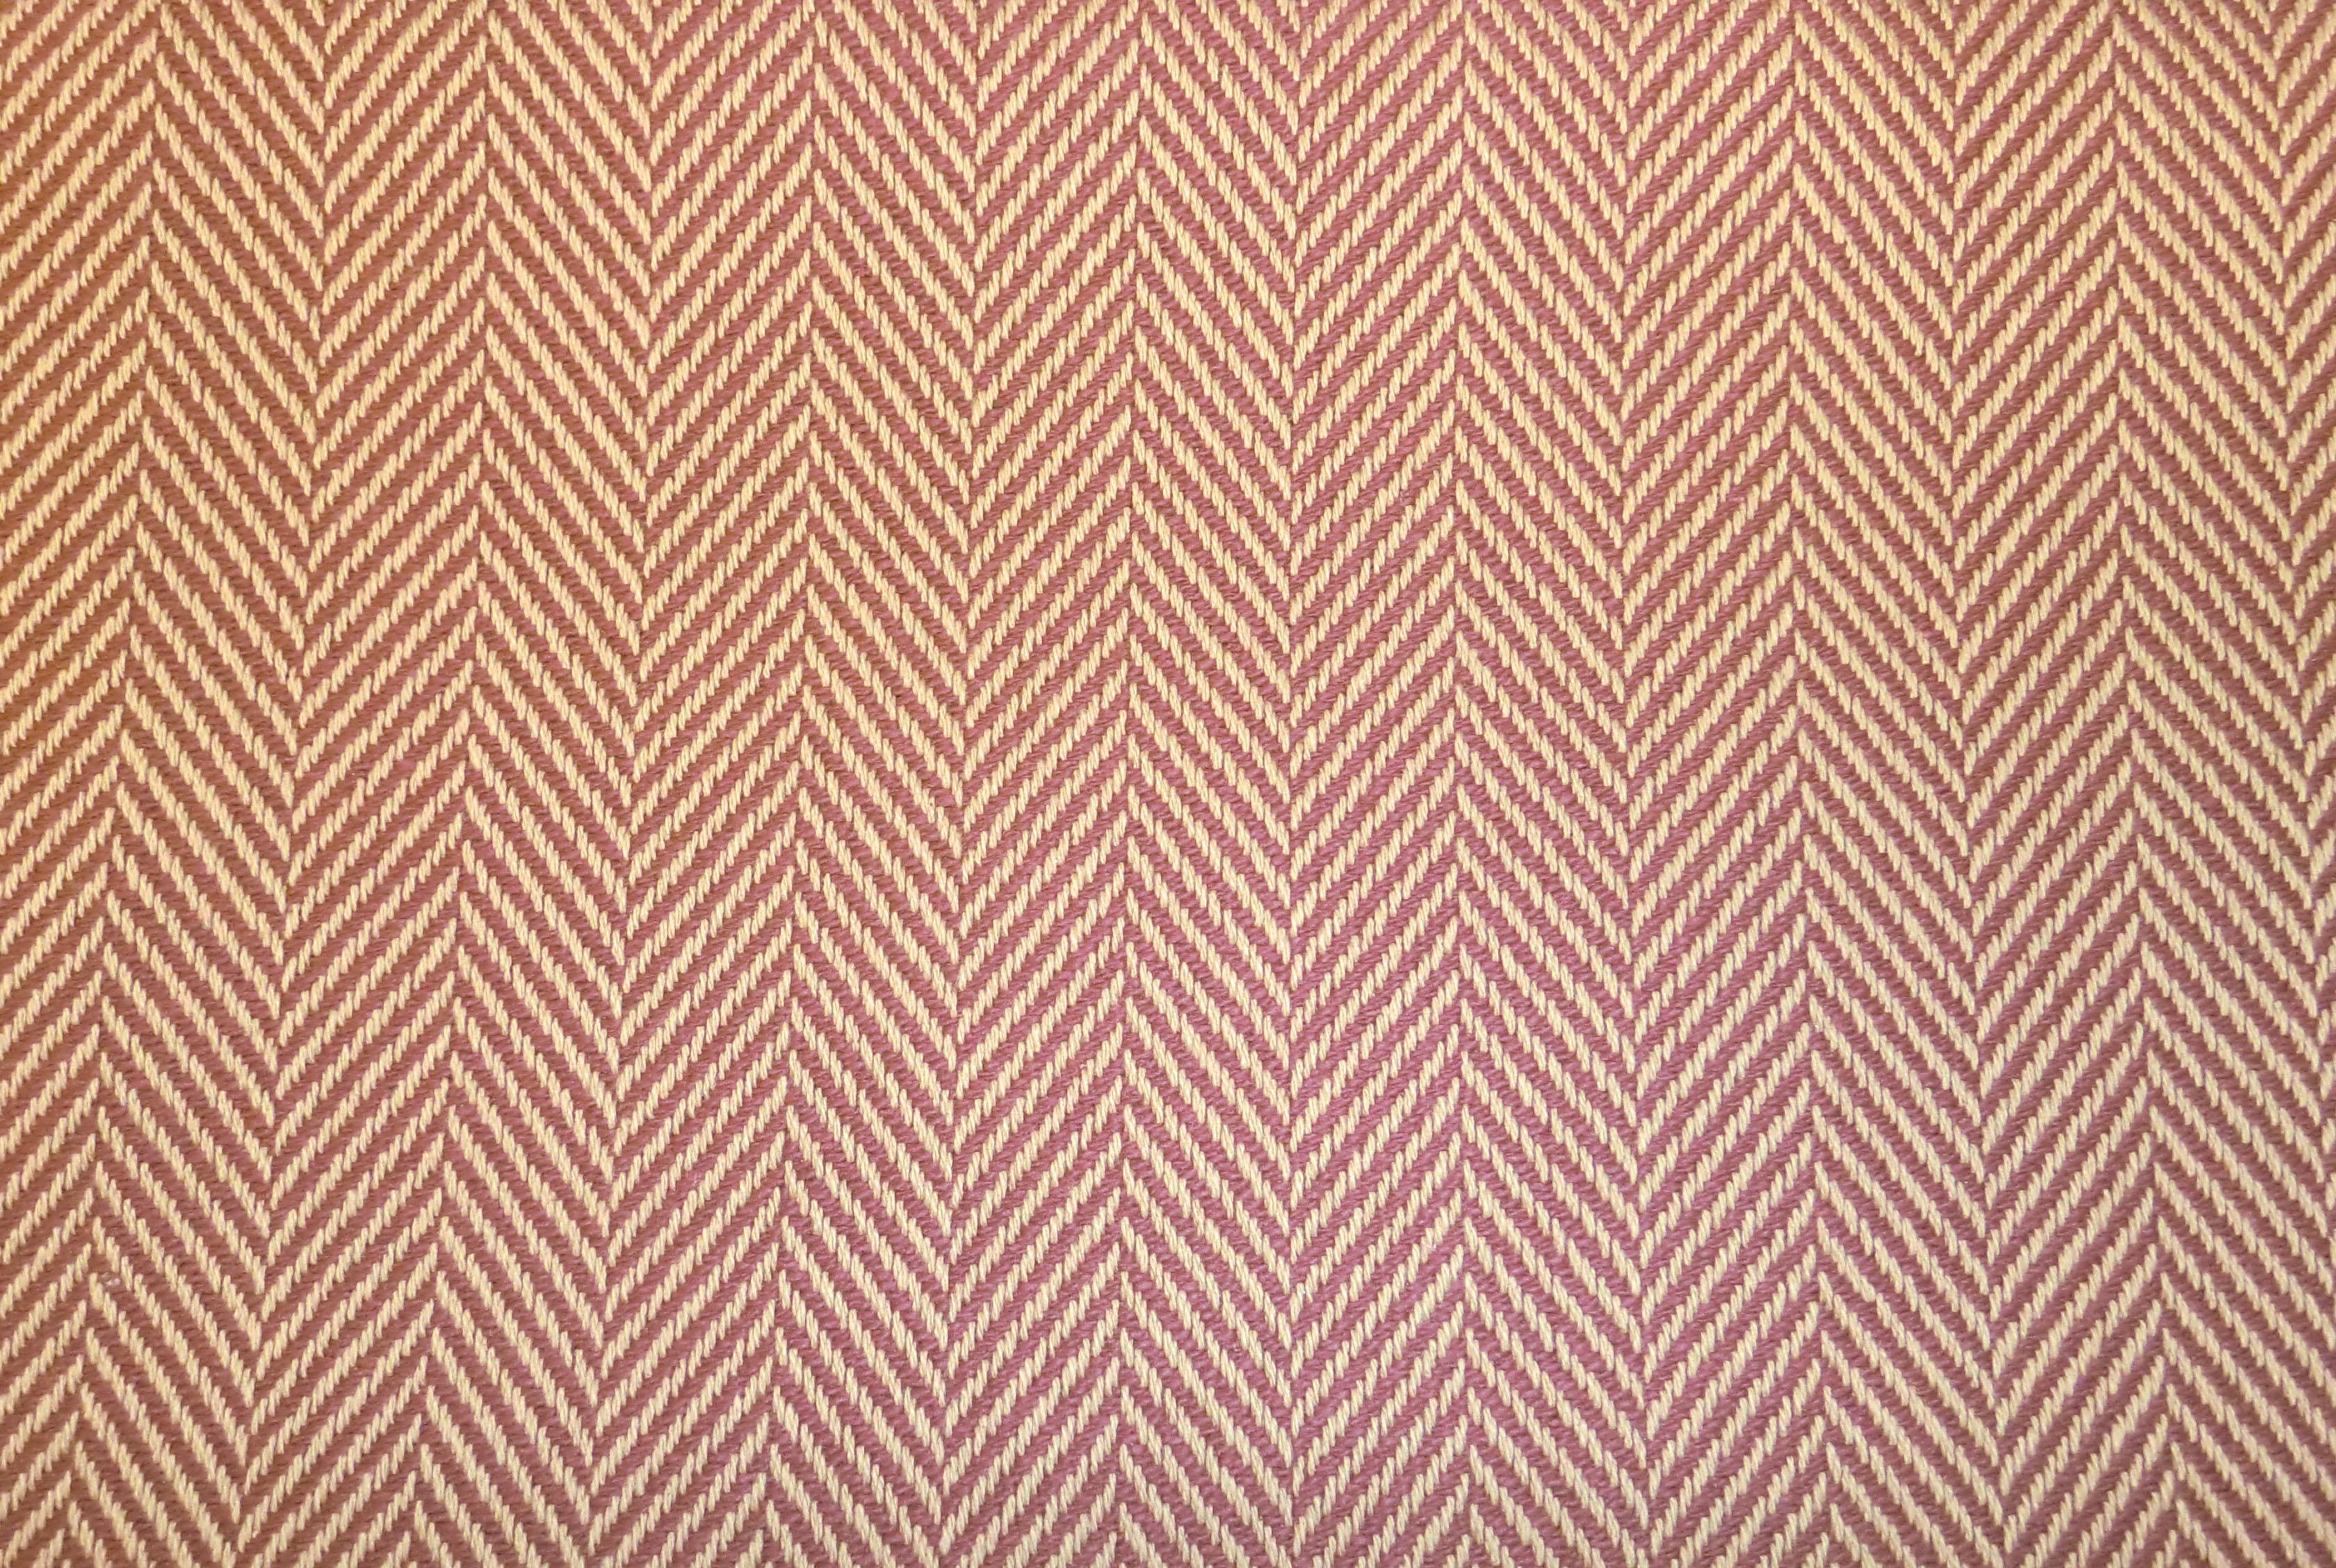 Herringbone fabric pattern the image for Patterned material fabric